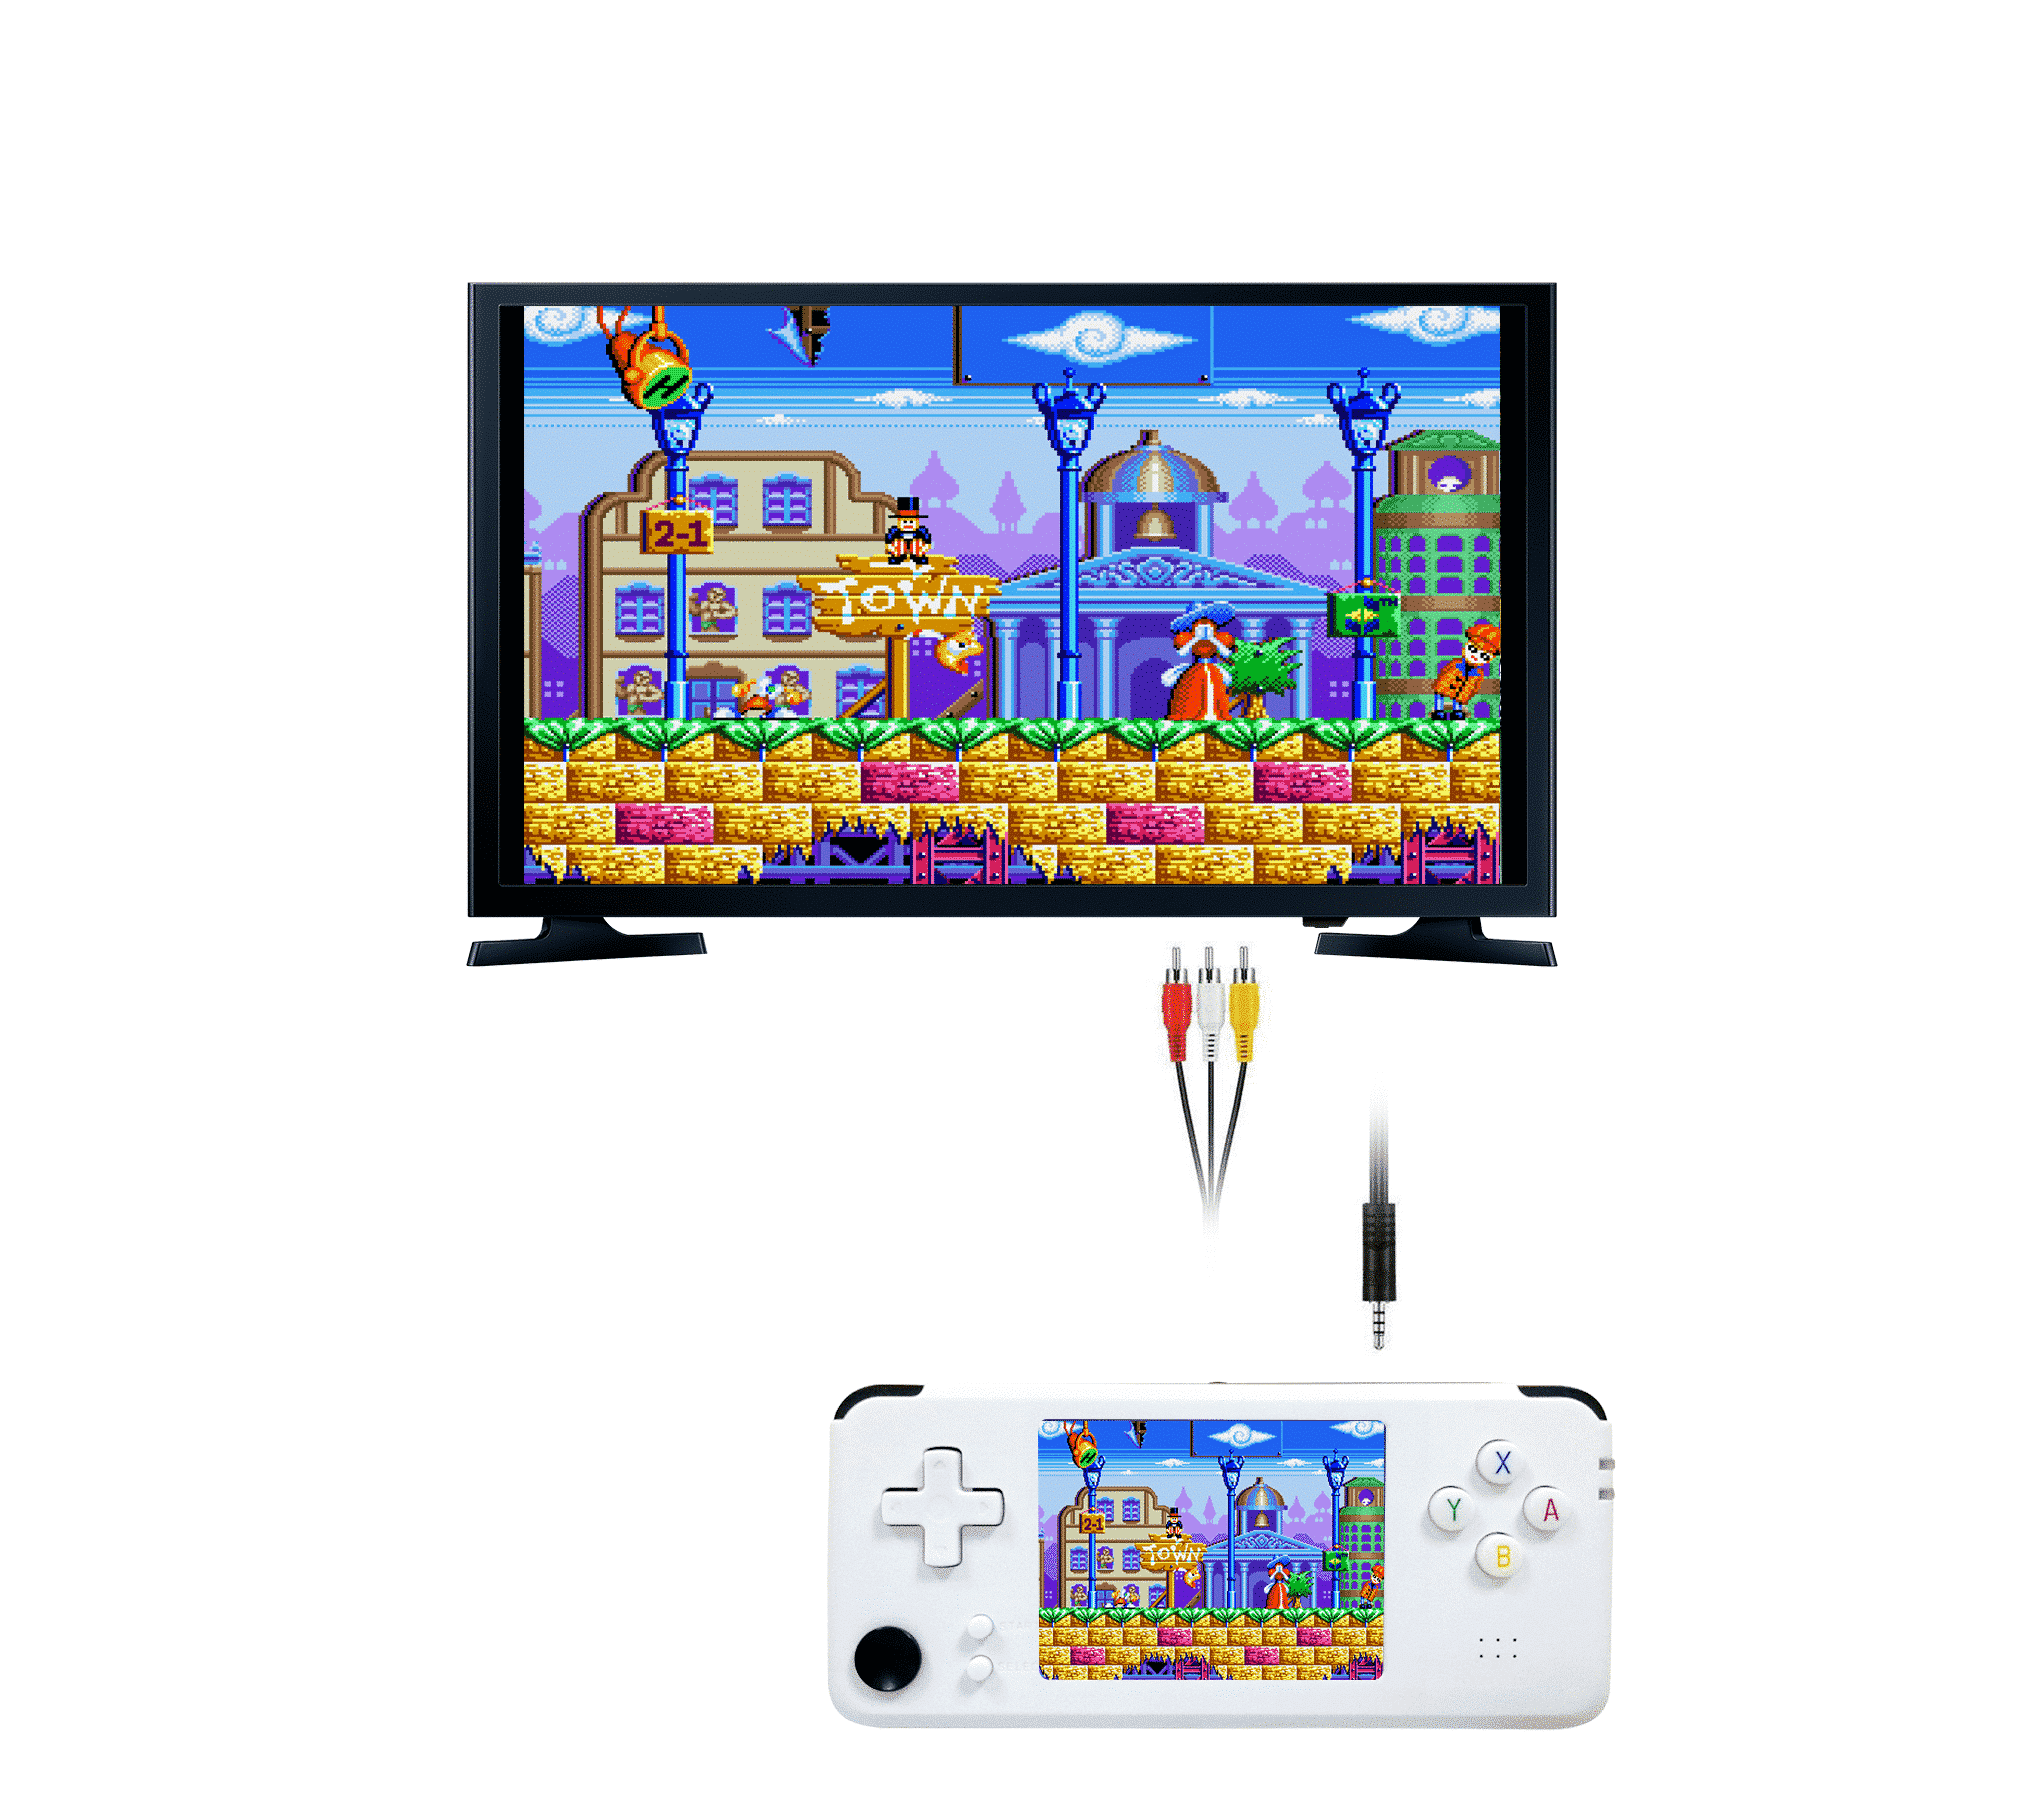 DroiX RS-97 Plus V2 Open Dingux Retro Gaming Console Handheld - White TV Output